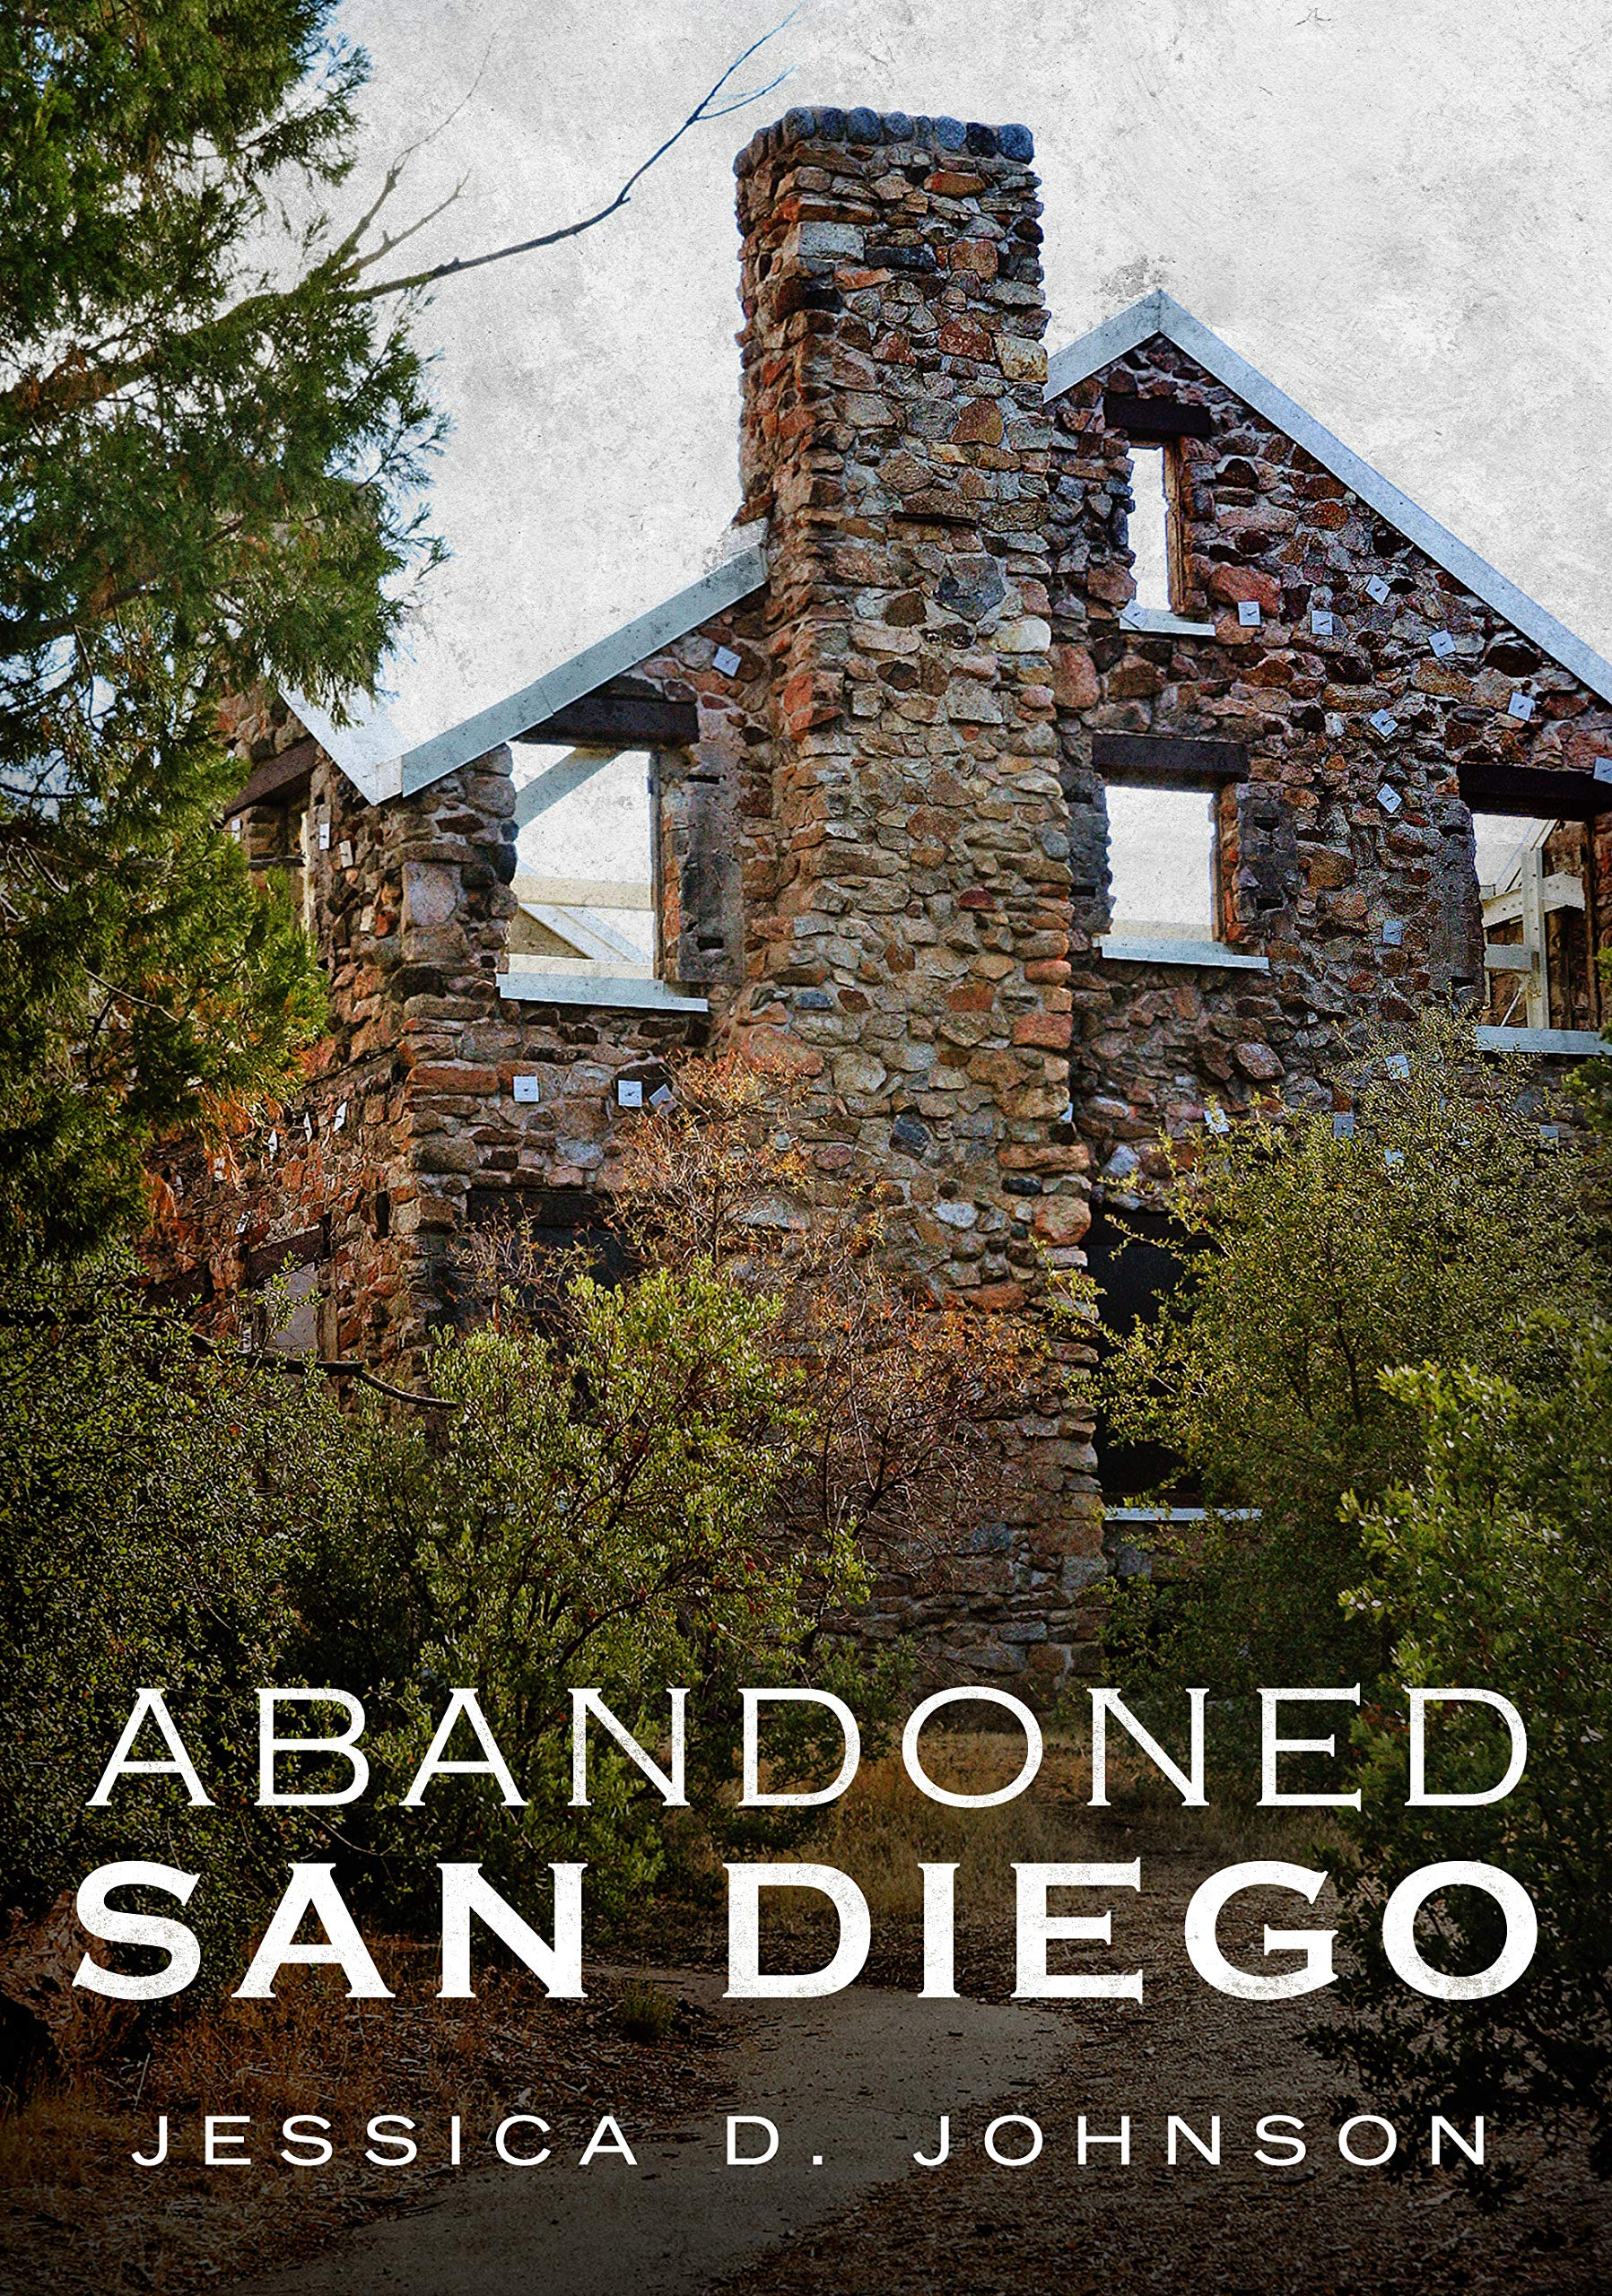 Abandoned San Diego